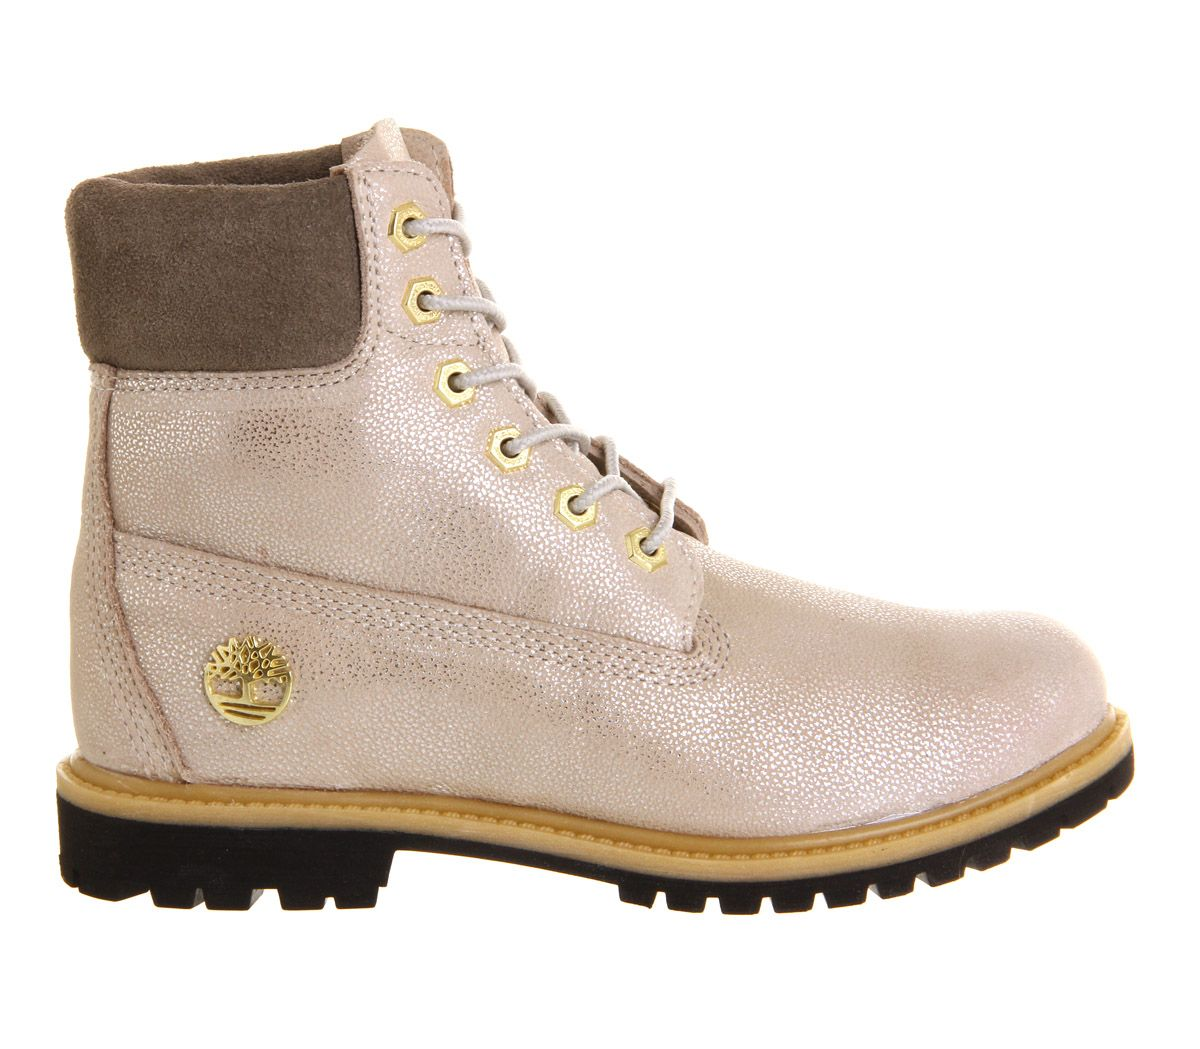 Buy Cest Bone Chich Silver Timberland Premium 6 Boots from OFFICE.co.uk.